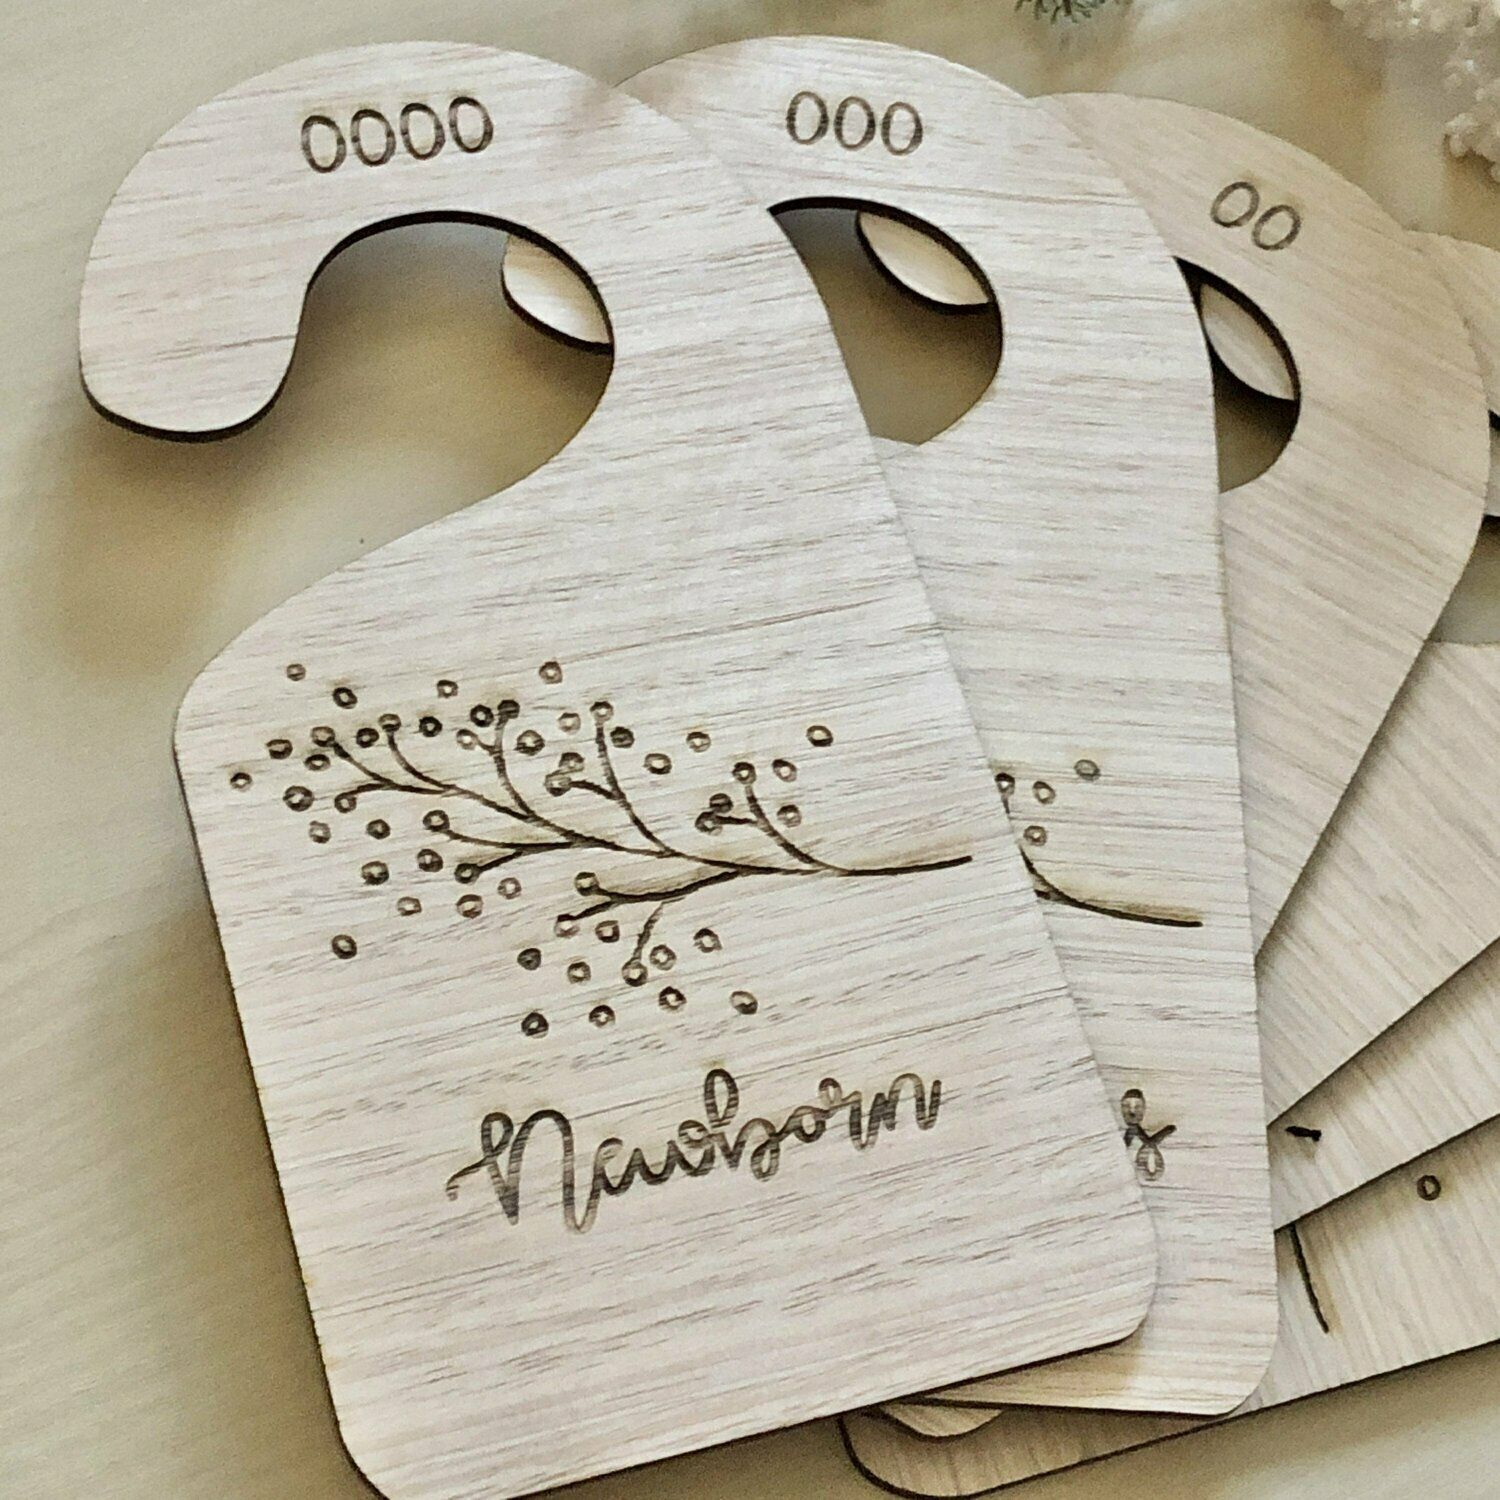 Clothes Dividers | wardrobe dividers | Baby wardrobe dividers | wooden wardrobe dividers | Australian made